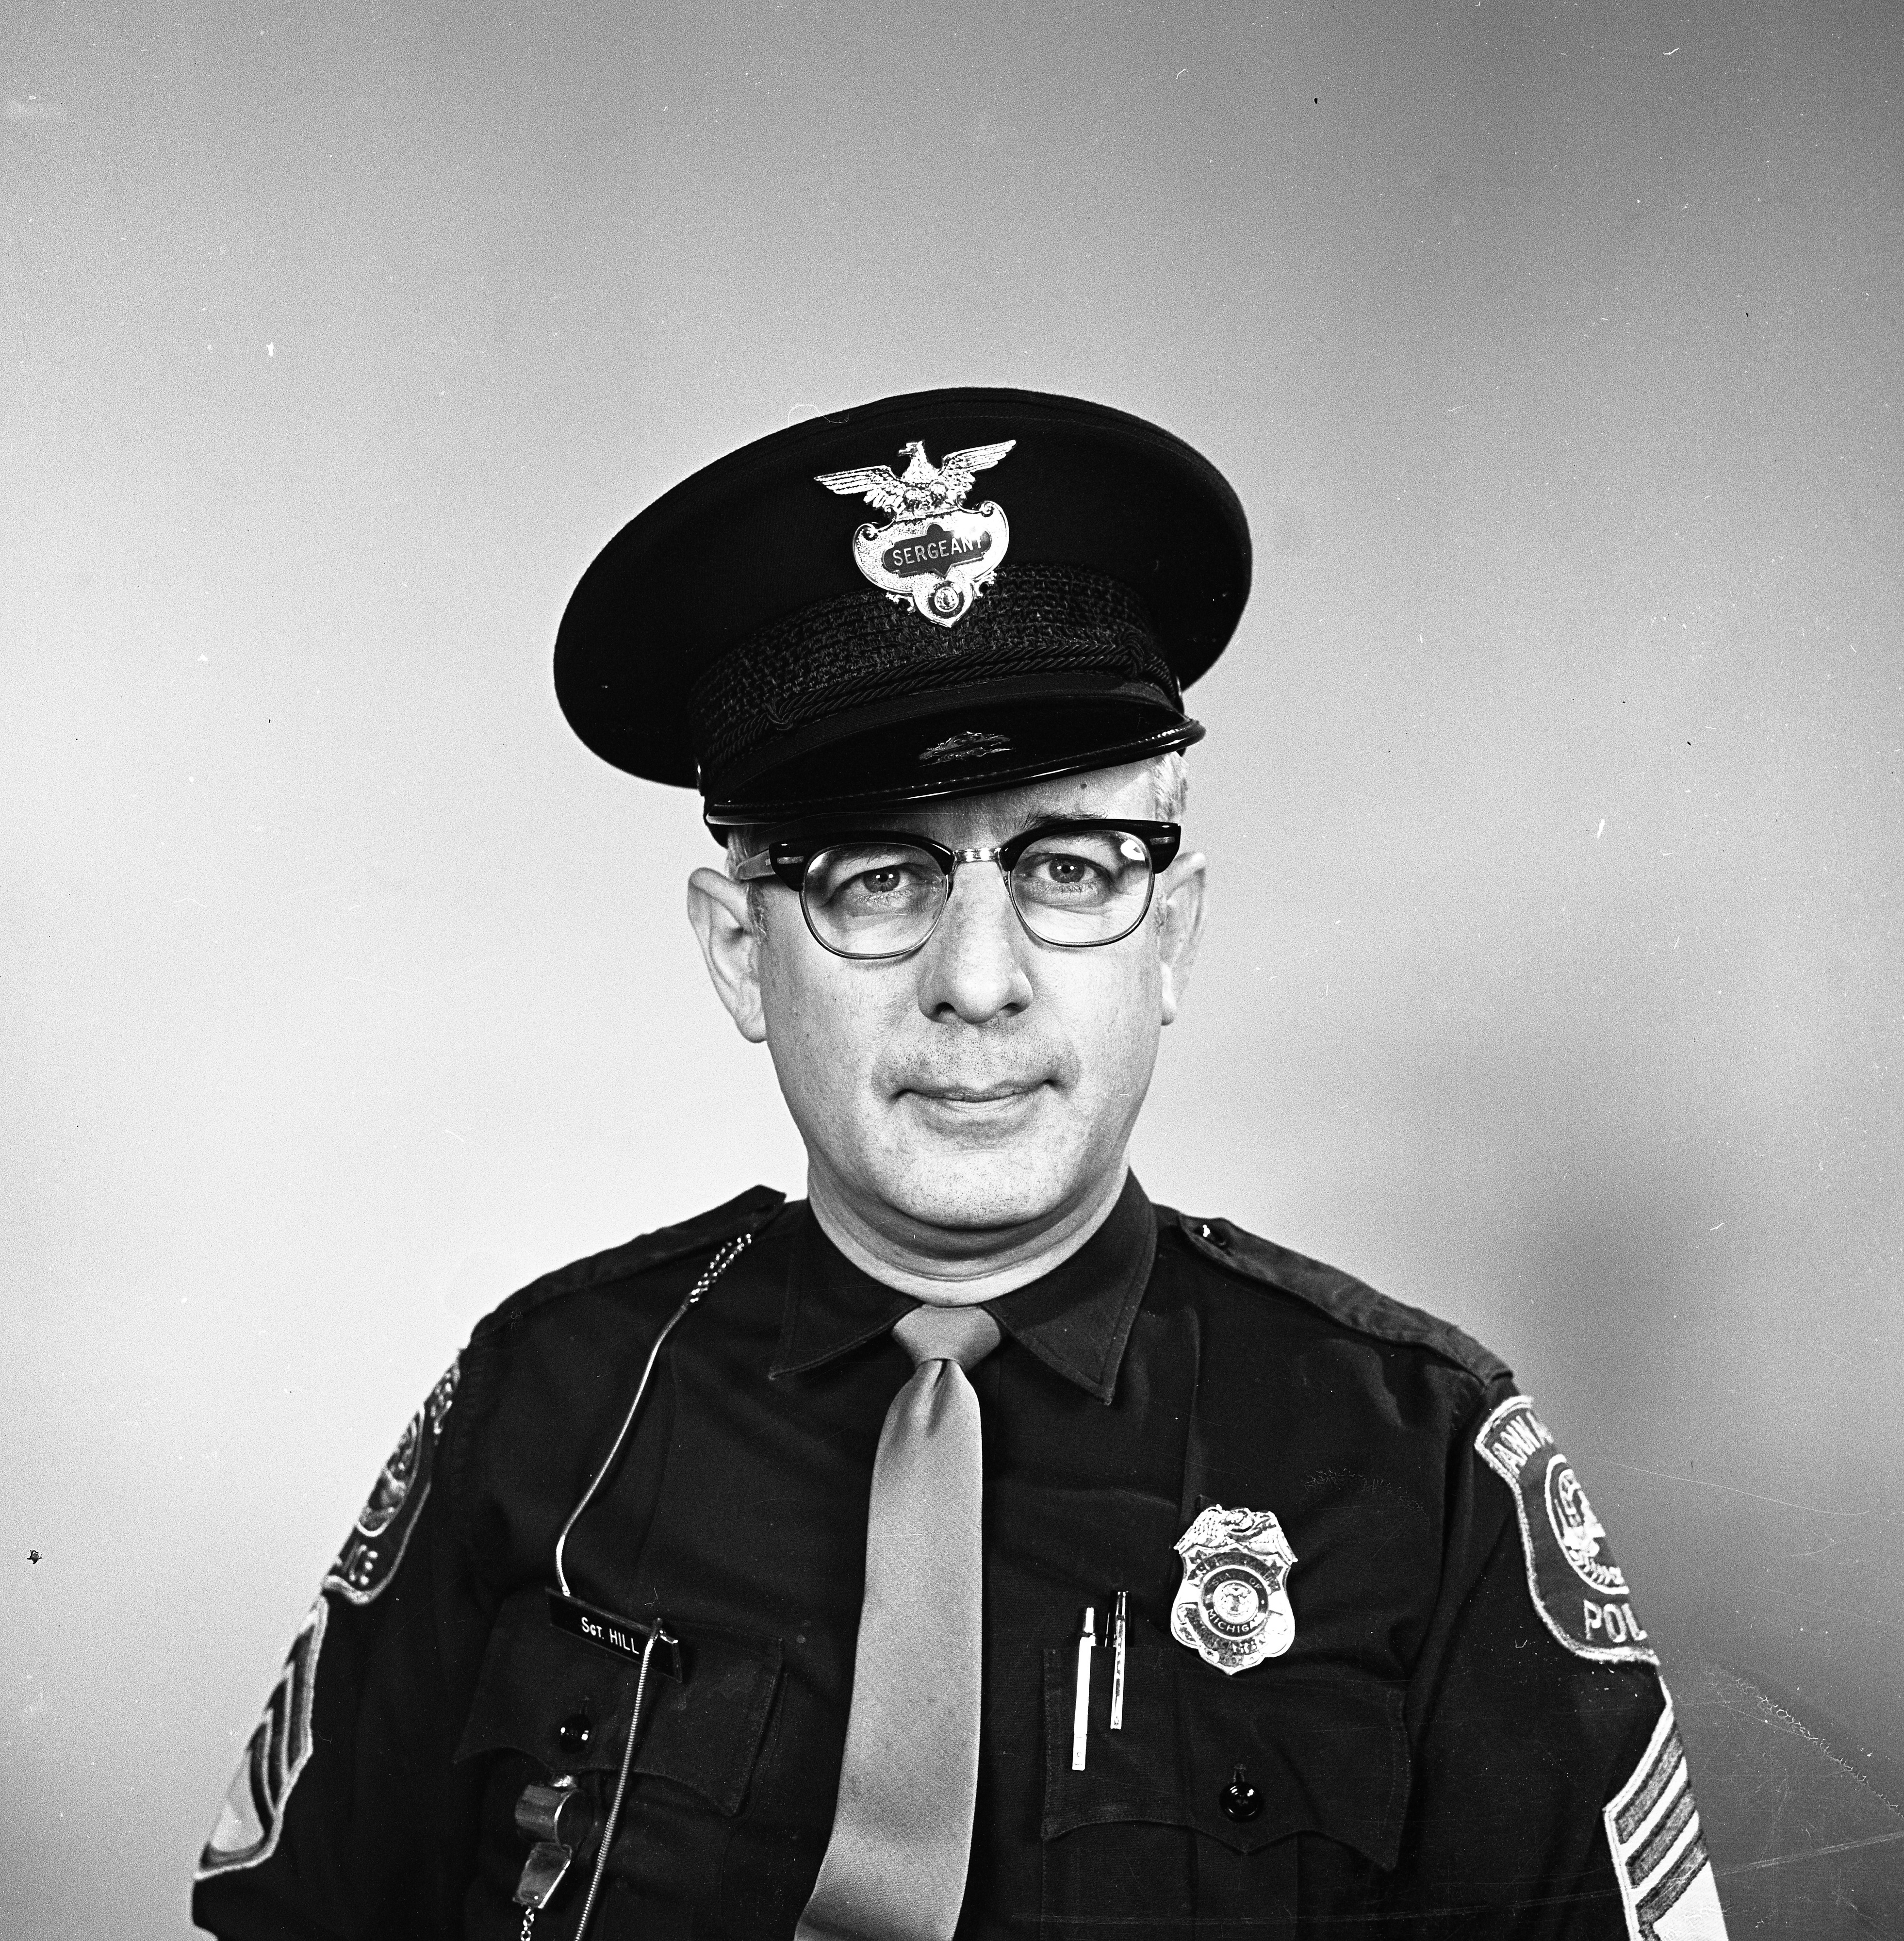 Ann Arbor Police Department Sgt. Richard G. Hill, May 1970 image